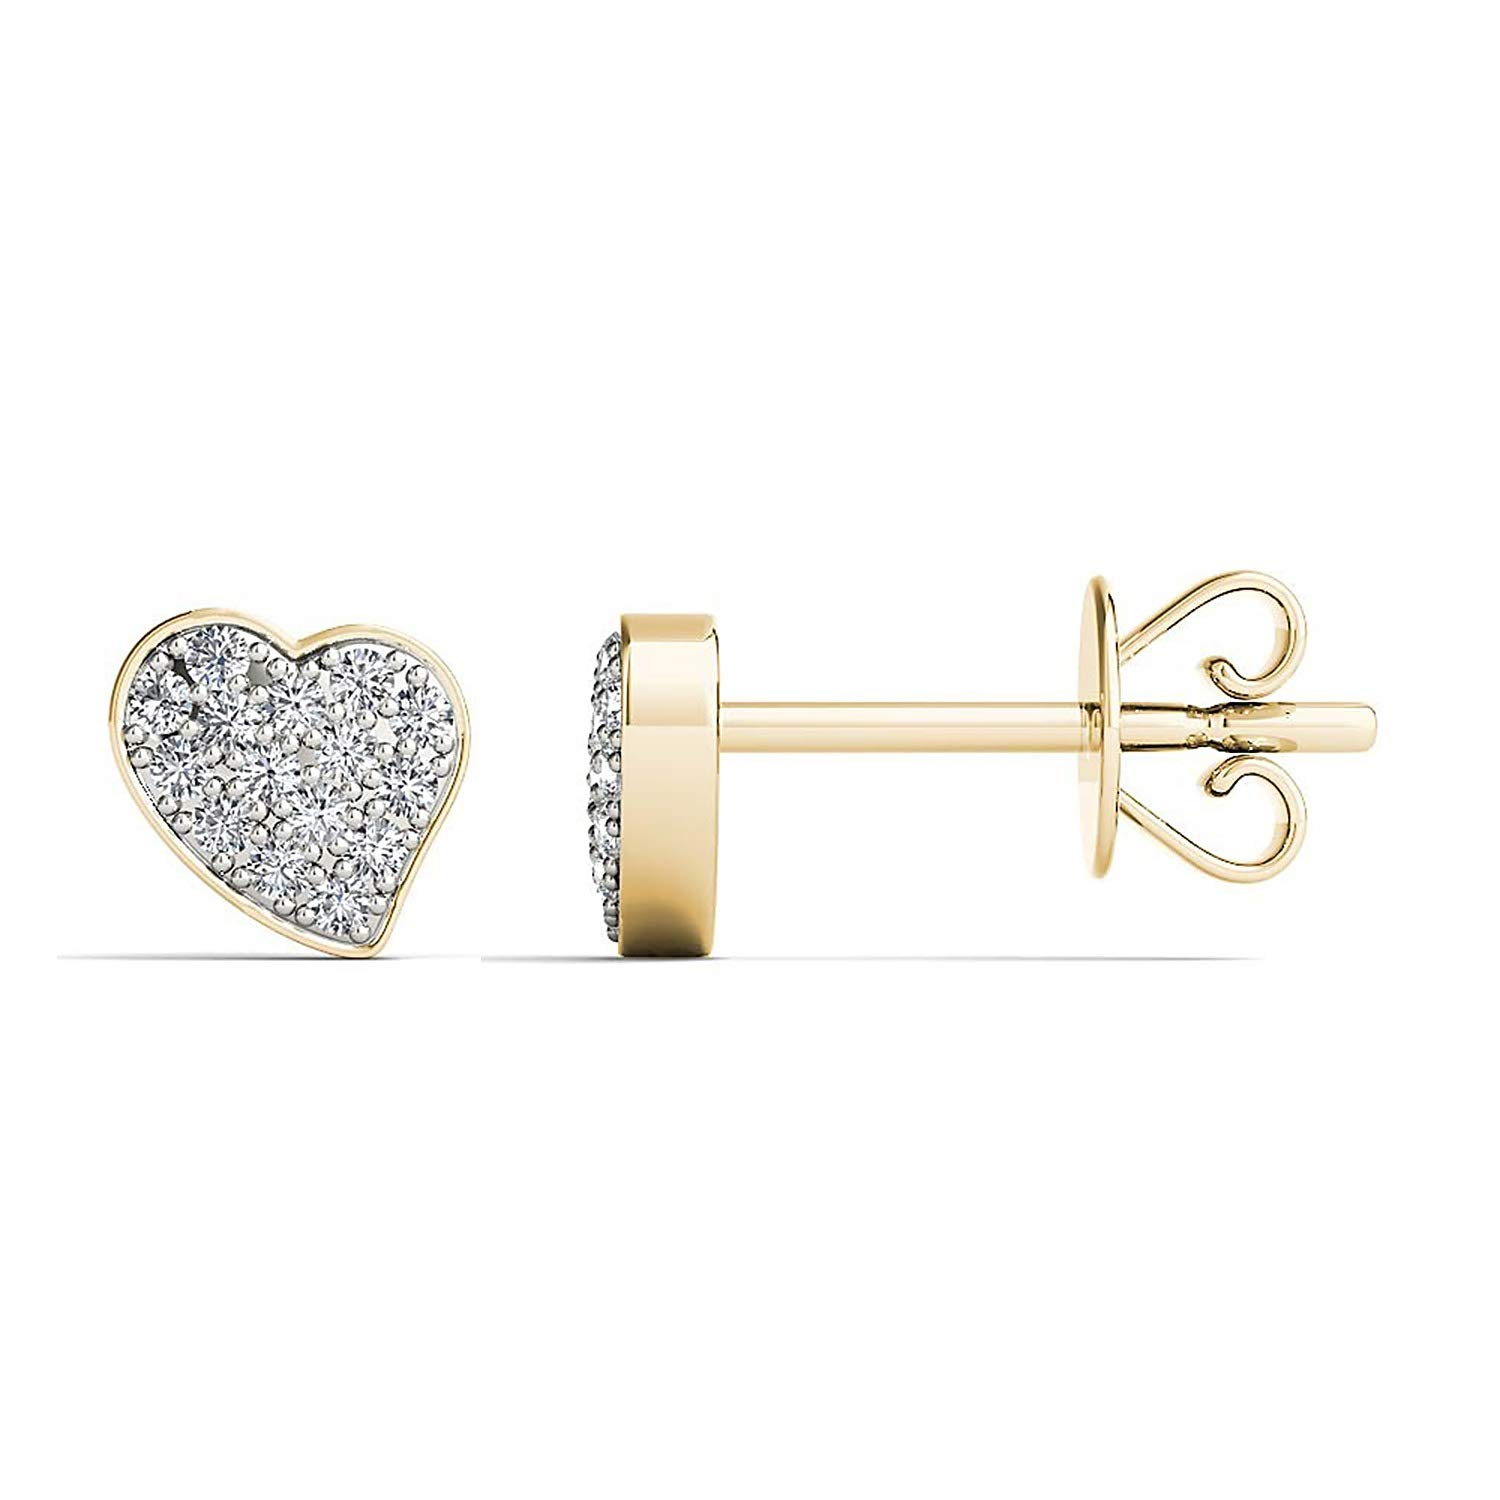 0.10 TCW Round Cut Simulated Diamond Heart Stud Earrings 925 Sterling Silver